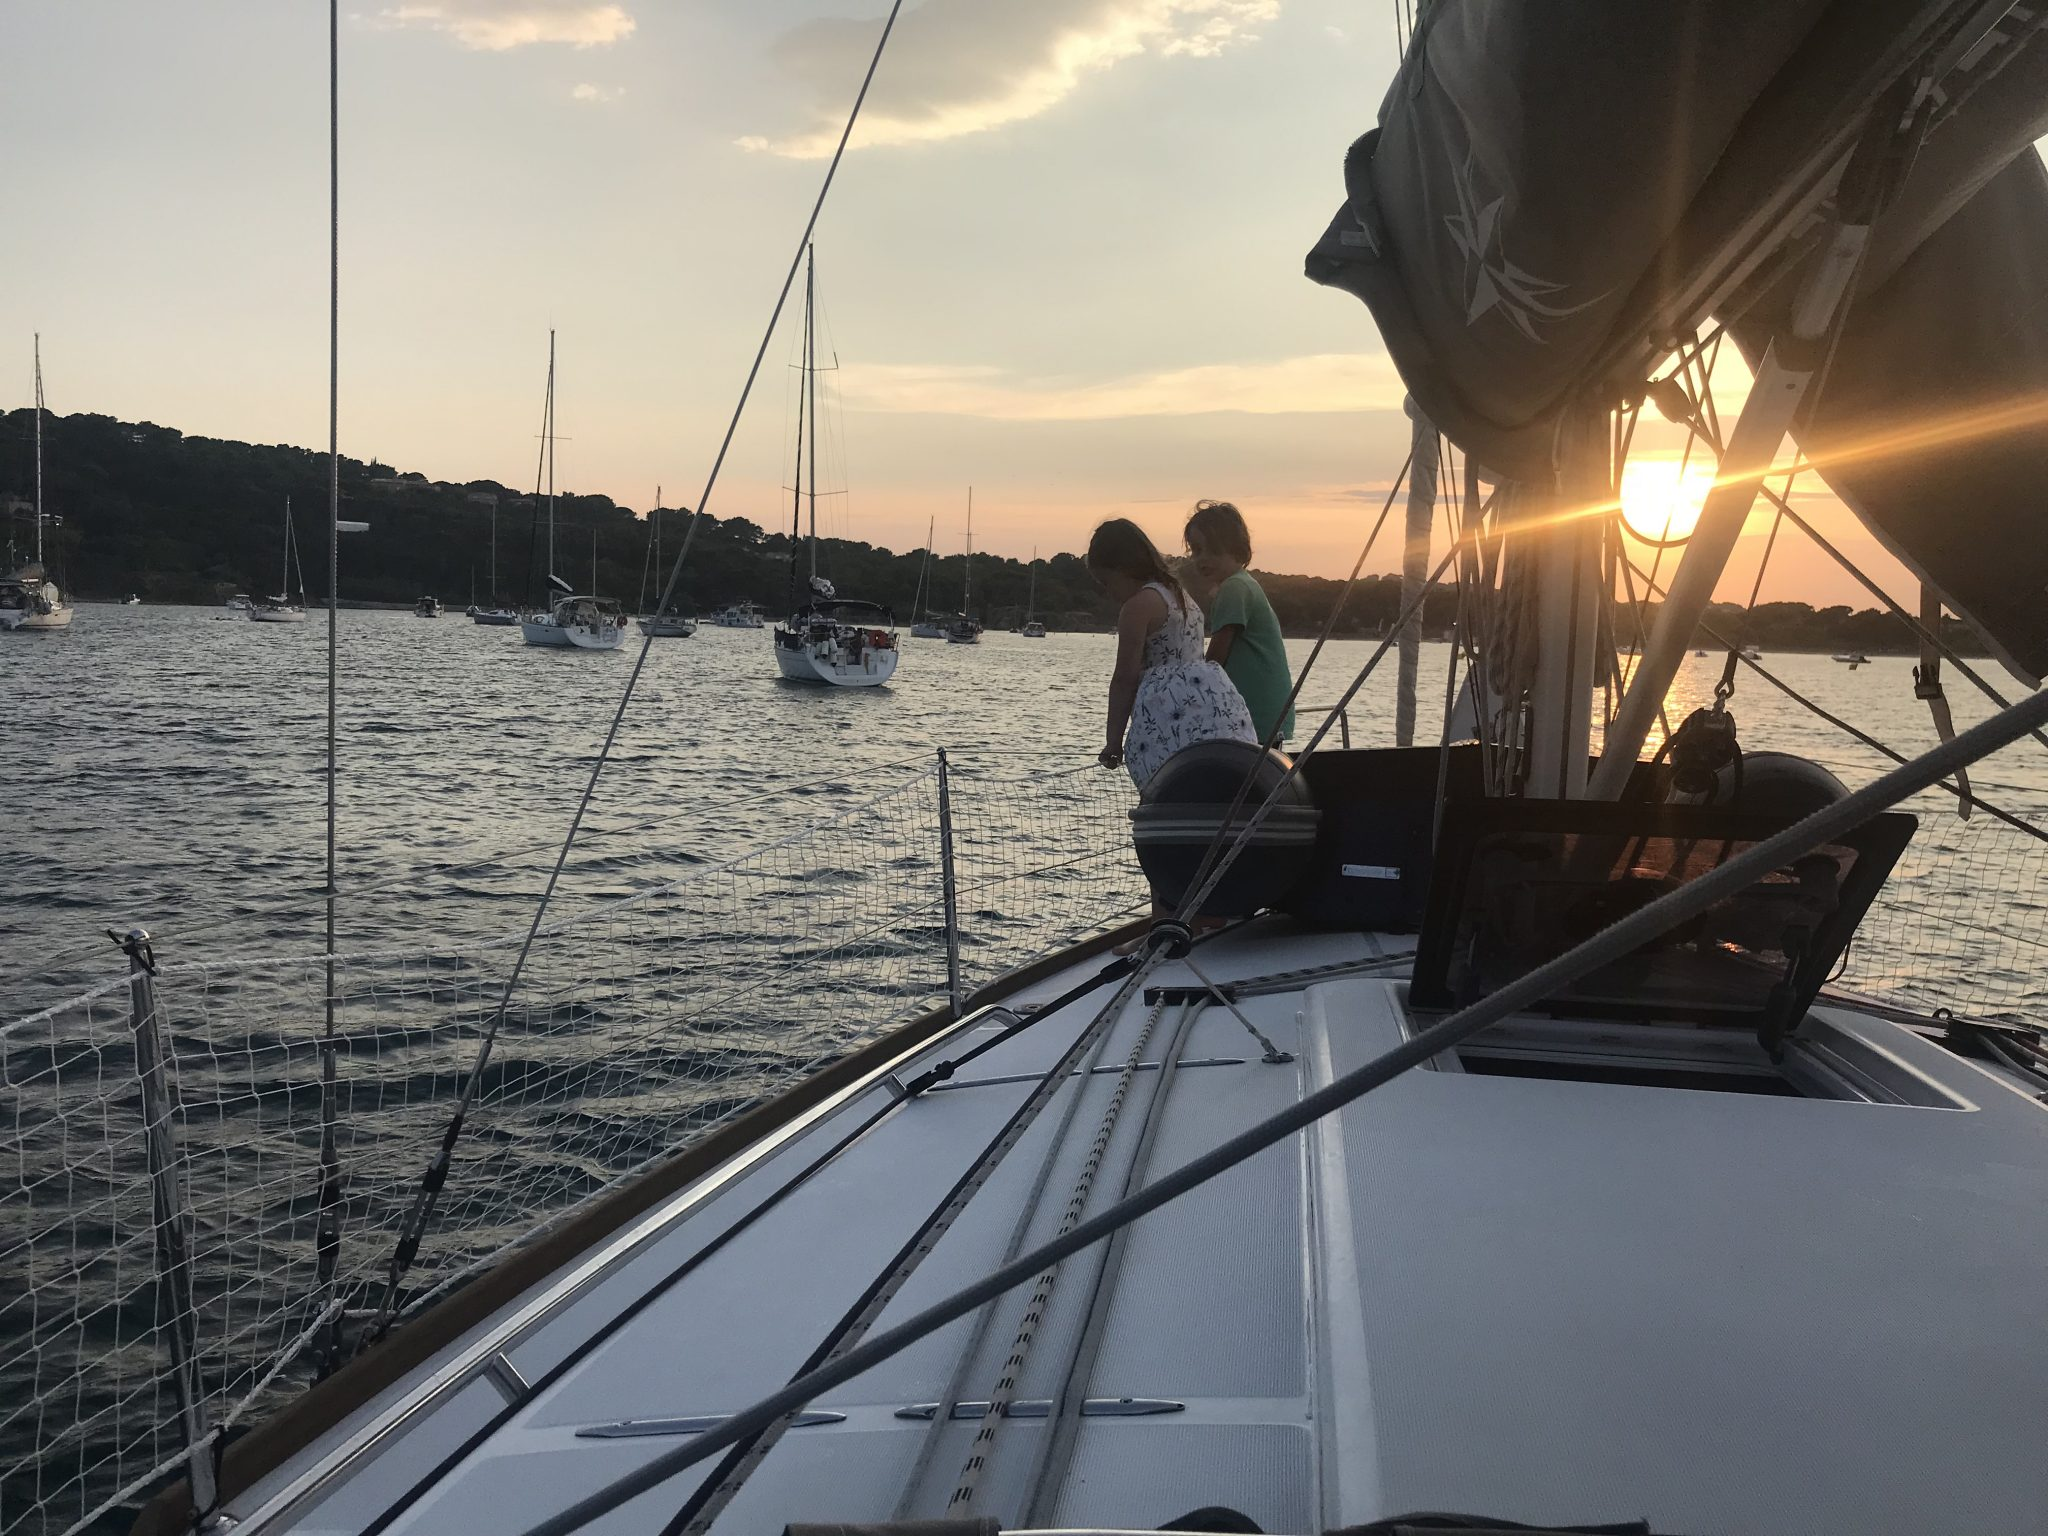 yacht charter - children stood on front of a yacht on a summer sailing holiday at sunset